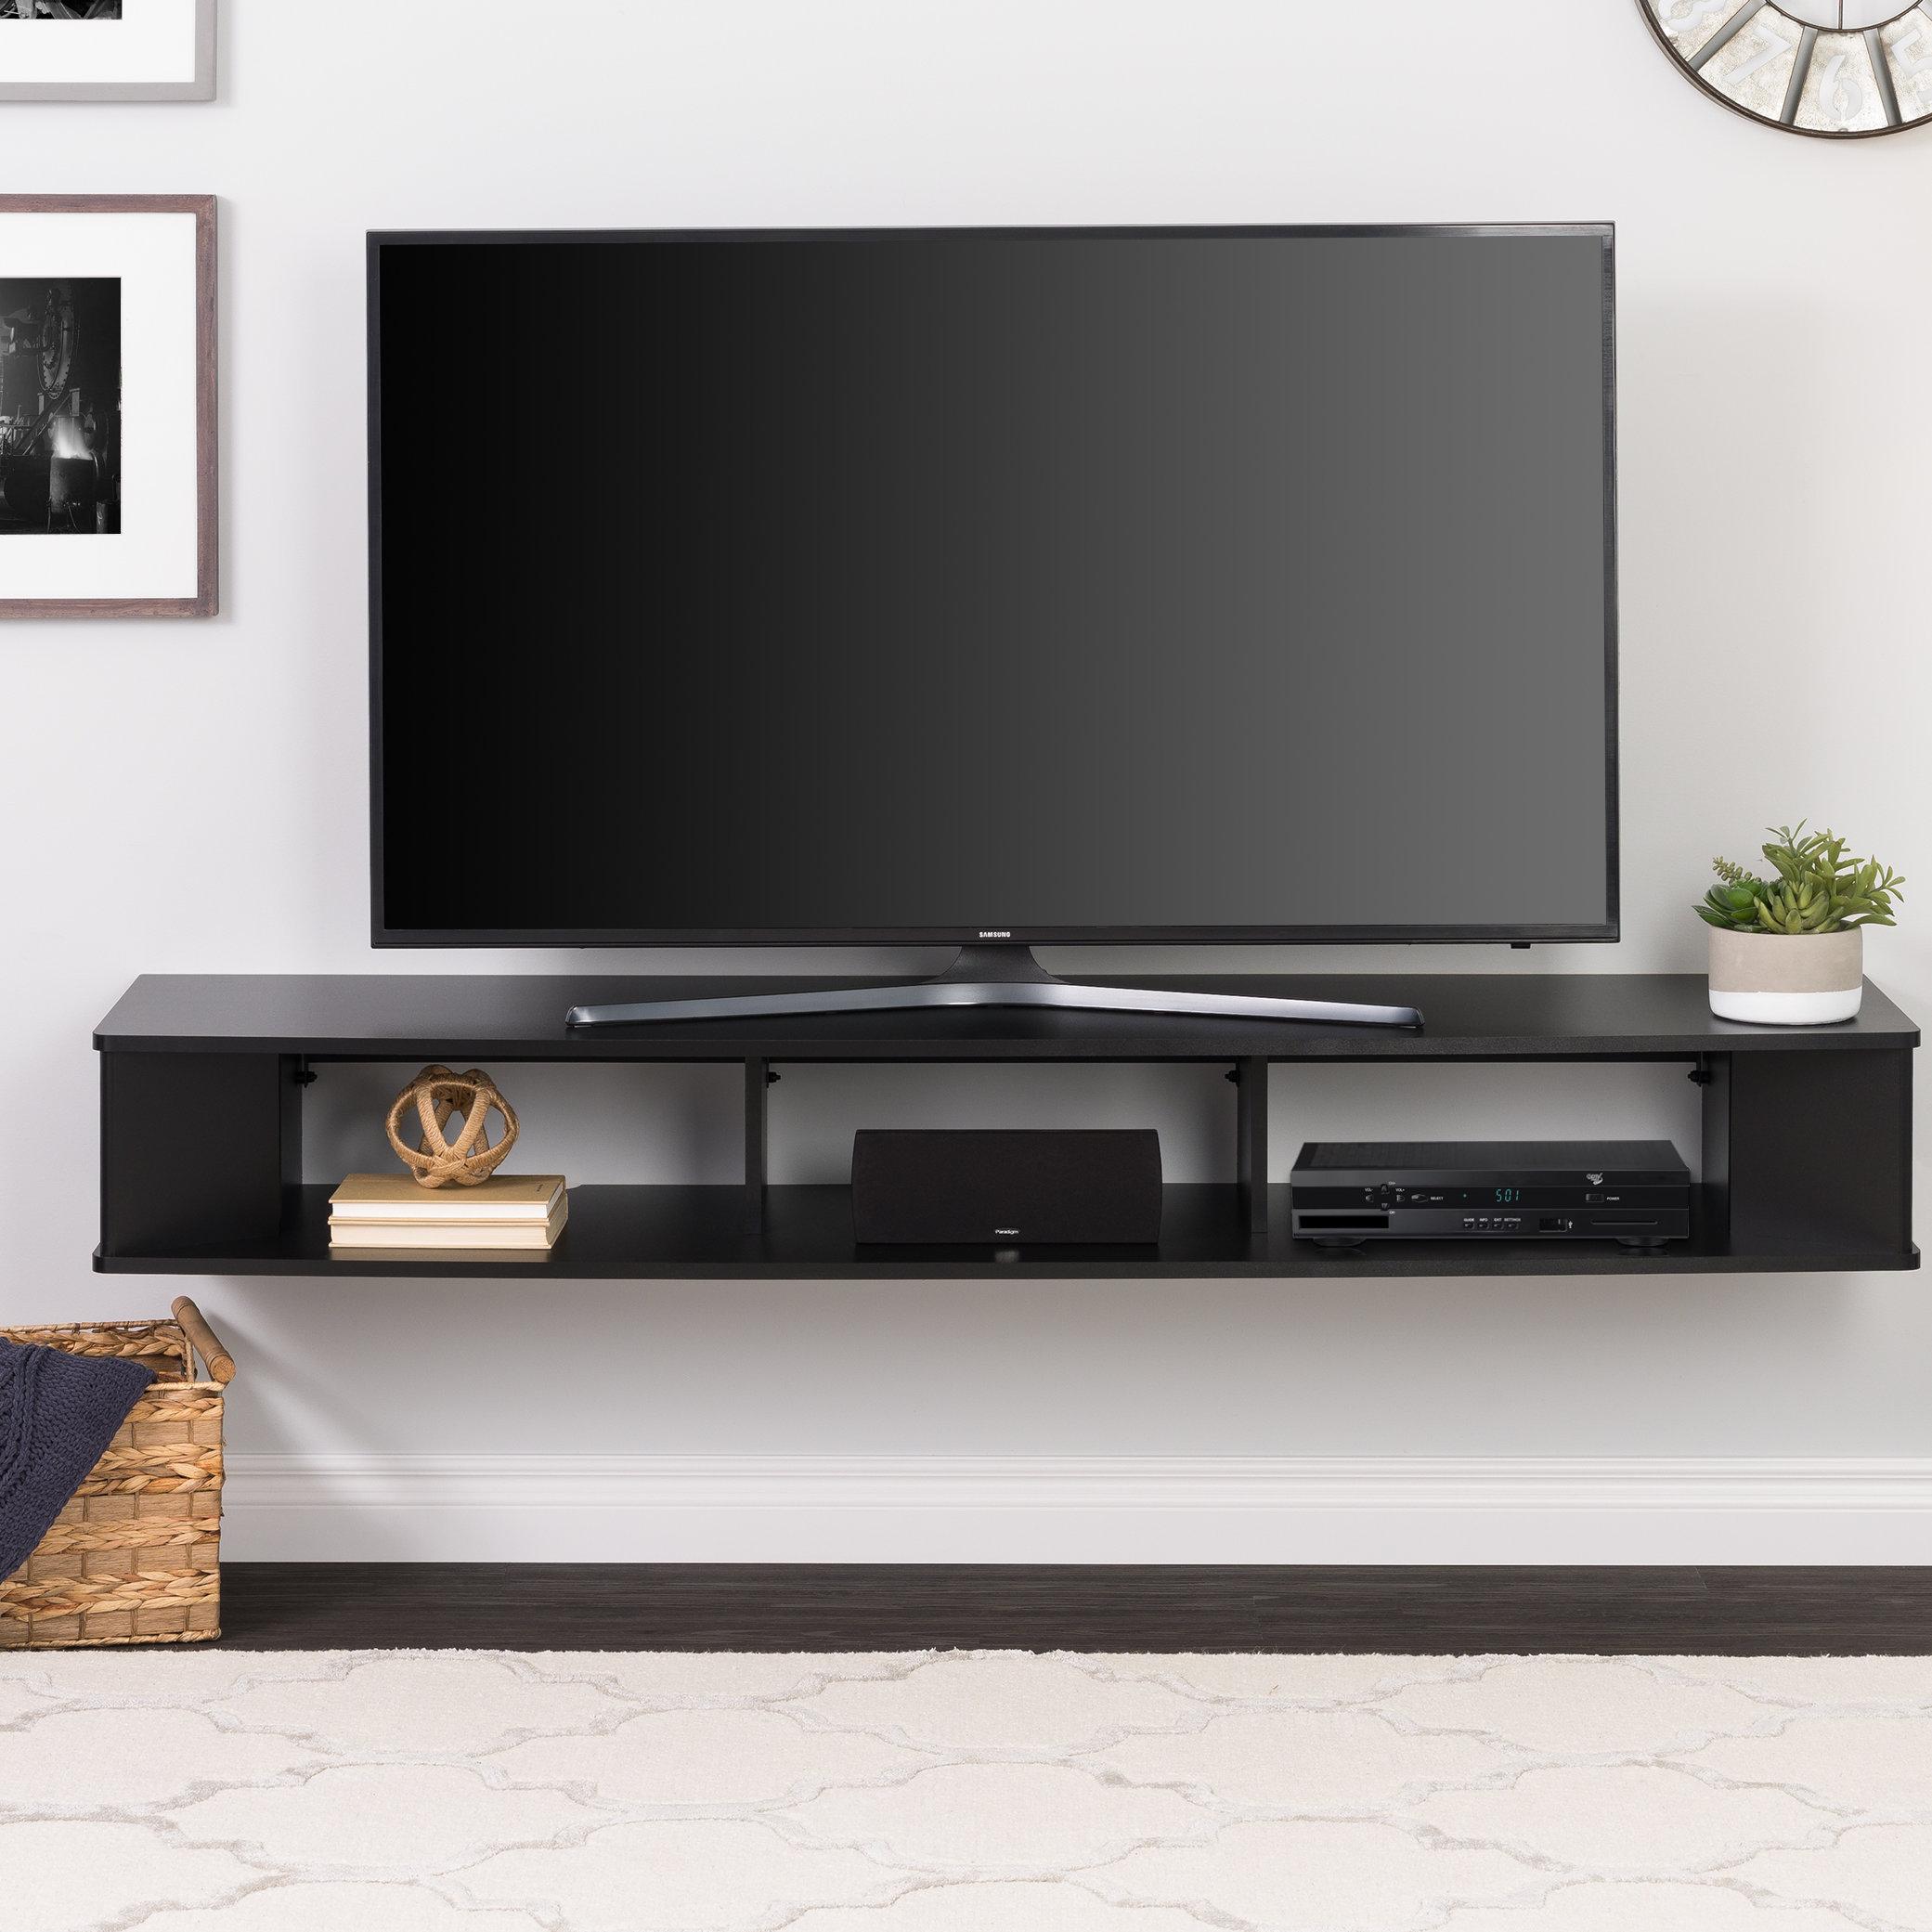 Tv Wall Mount Cabinet | Wayfair Inside Willa 80 Inch Tv Stands (View 16 of 30)